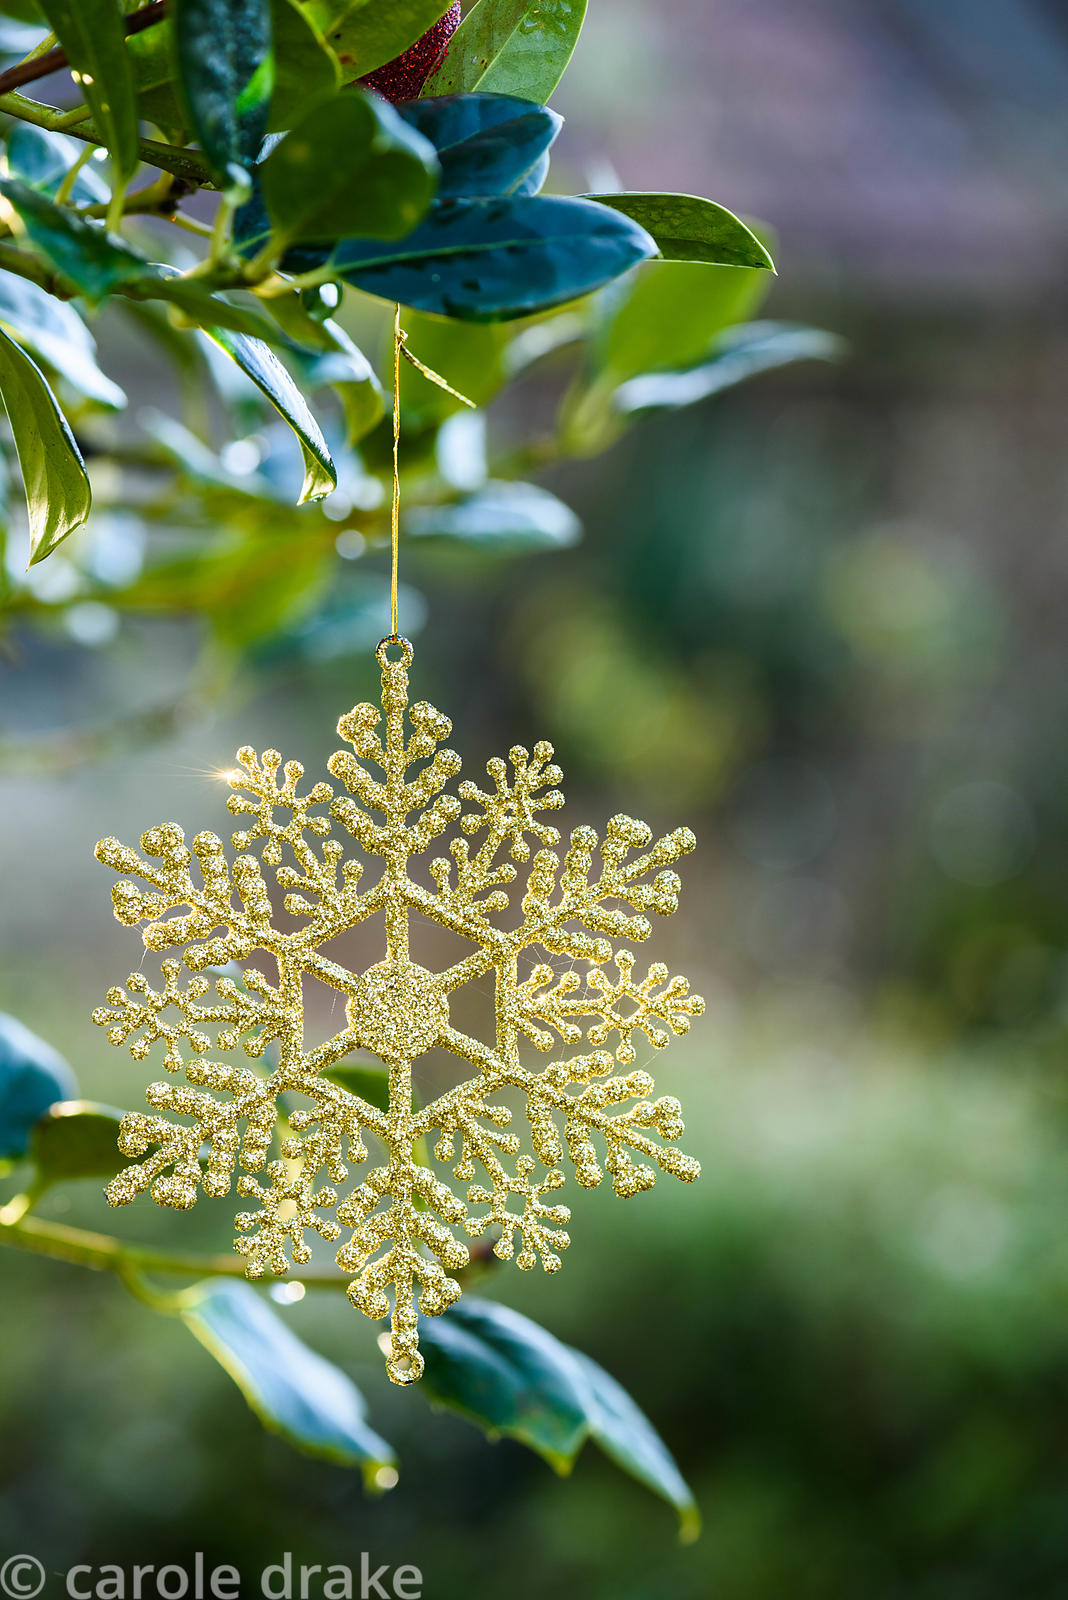 Christmas decorations in the shape of snowflakes hanging from the branches of a standard holly